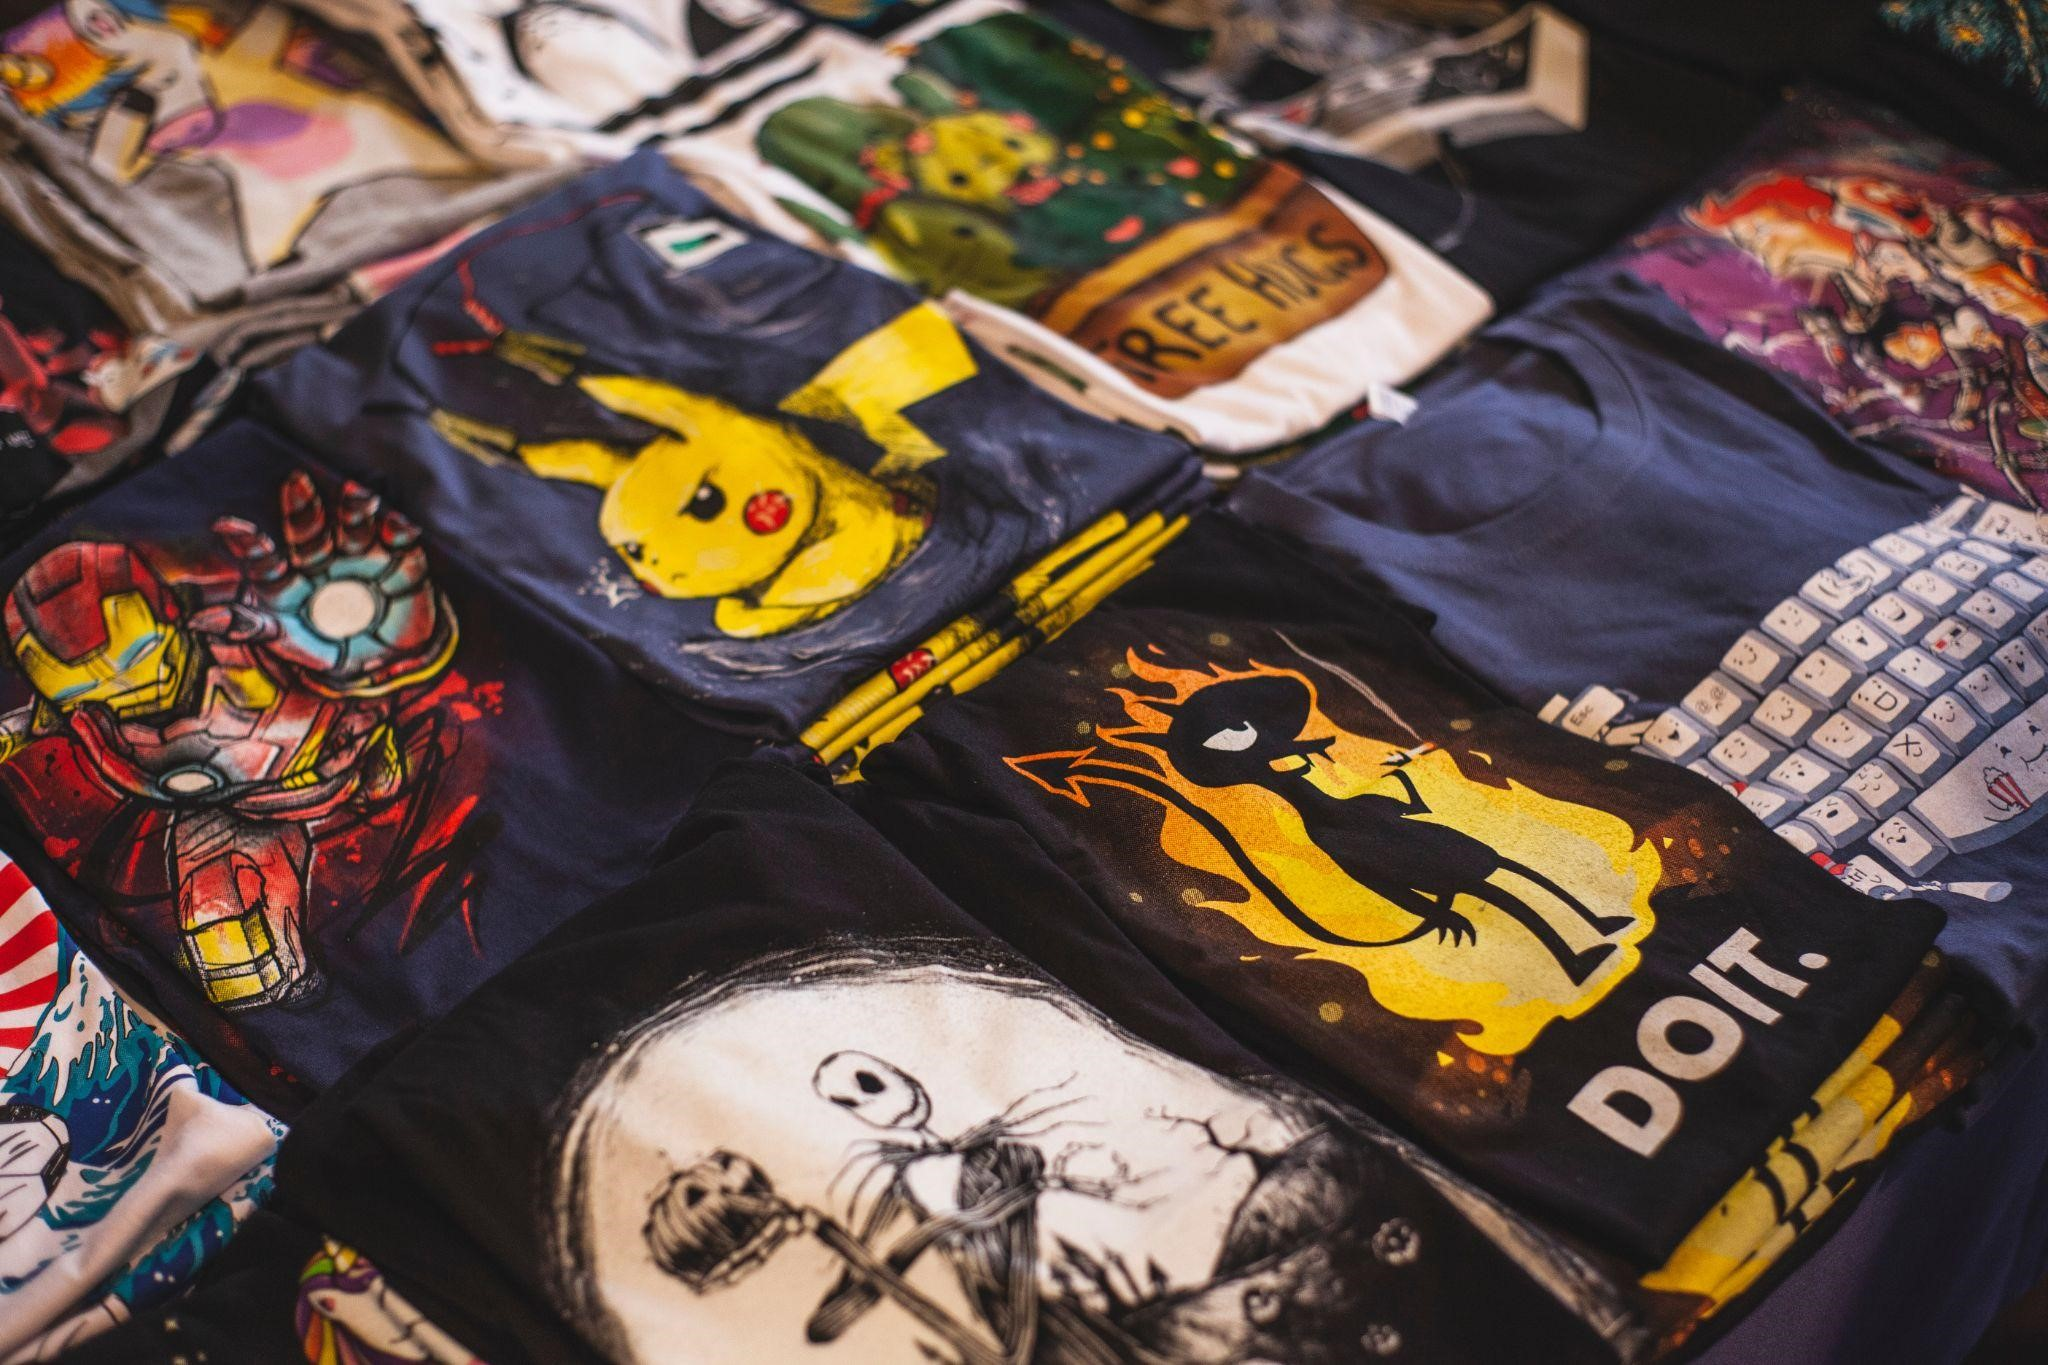 Most Common Types of Fan Graphic T-shirts